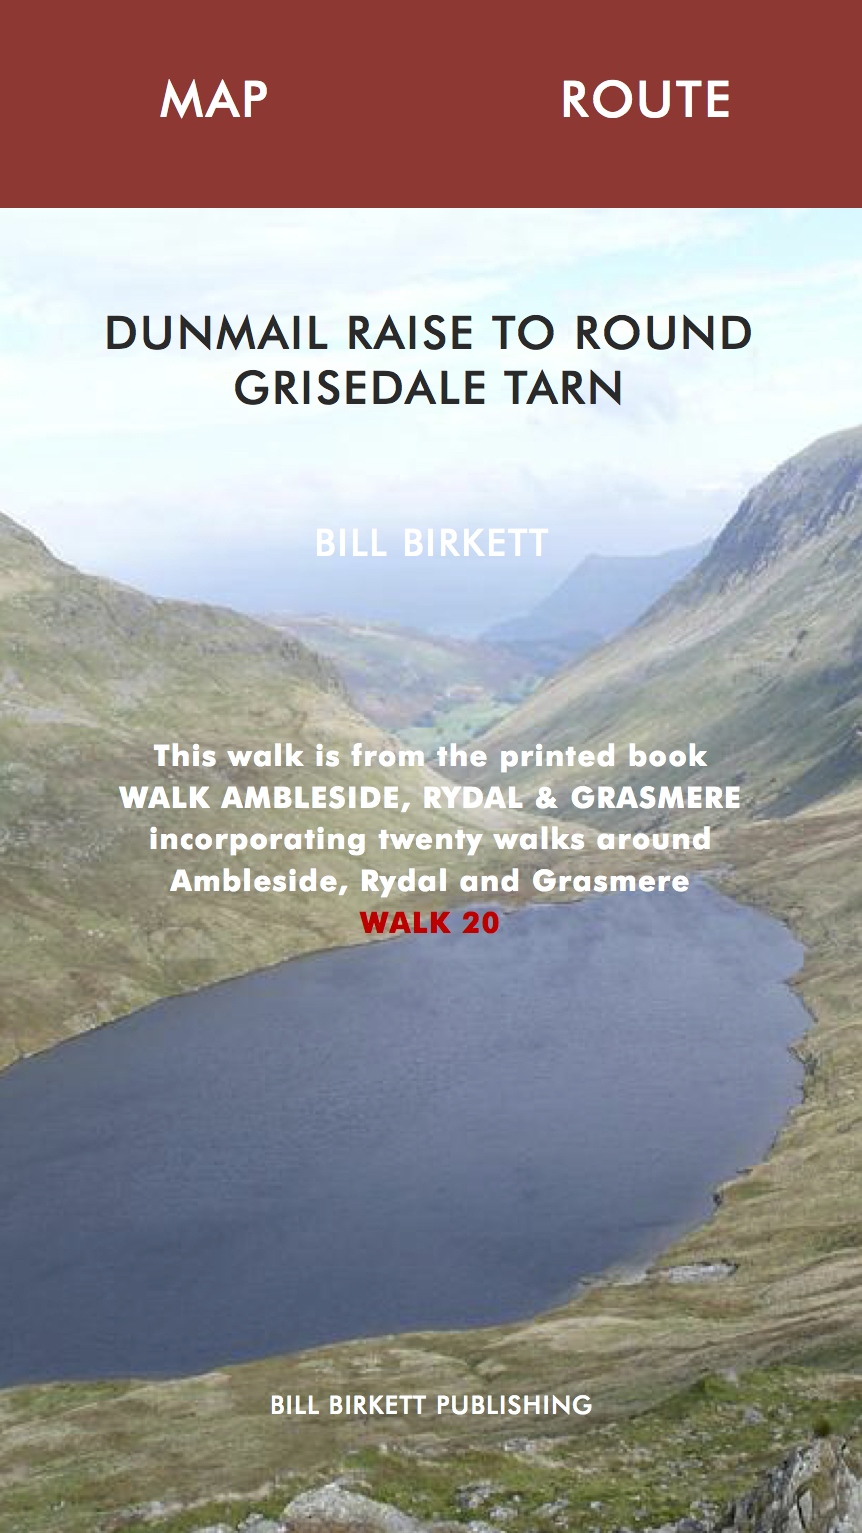 DUNMAIL RAISE TO ROUND GRISEDALE TARN